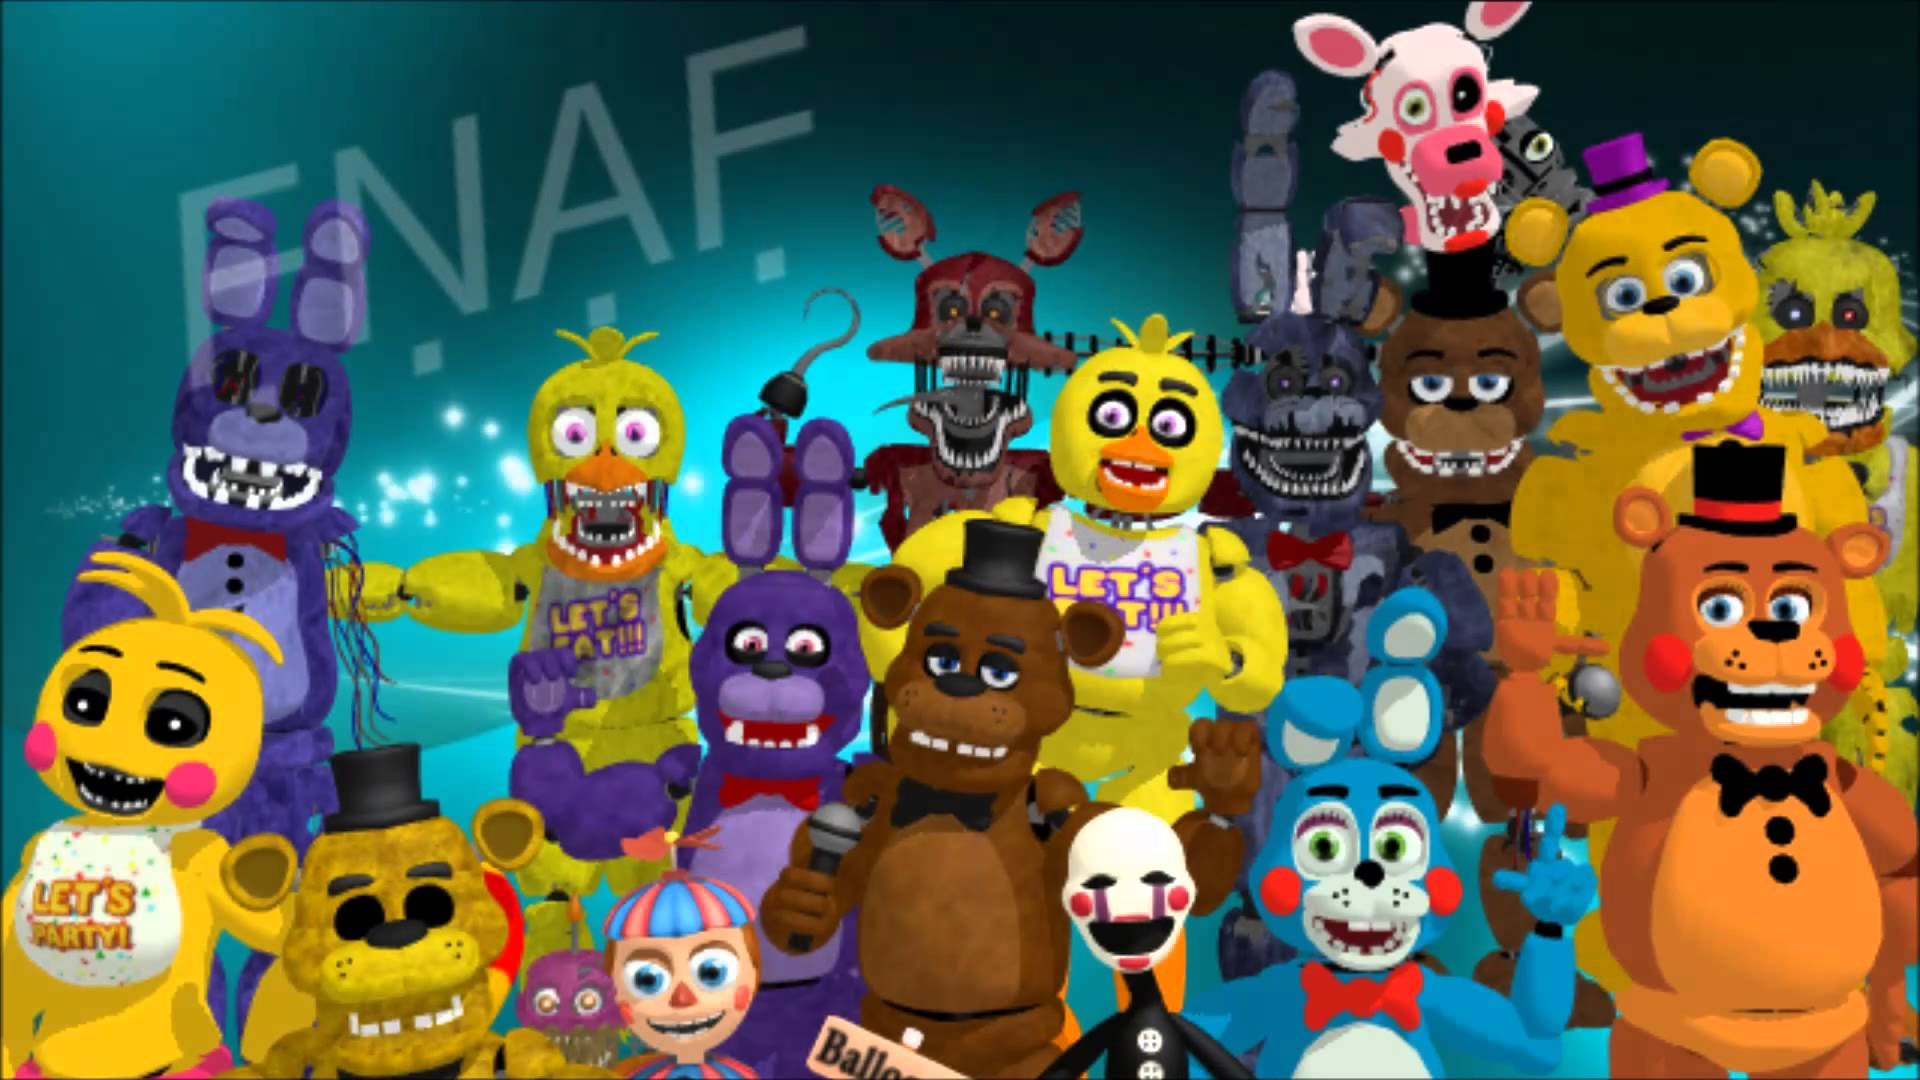 Five Nights At Freddy's Wallpaper - partie 2 - YouTube